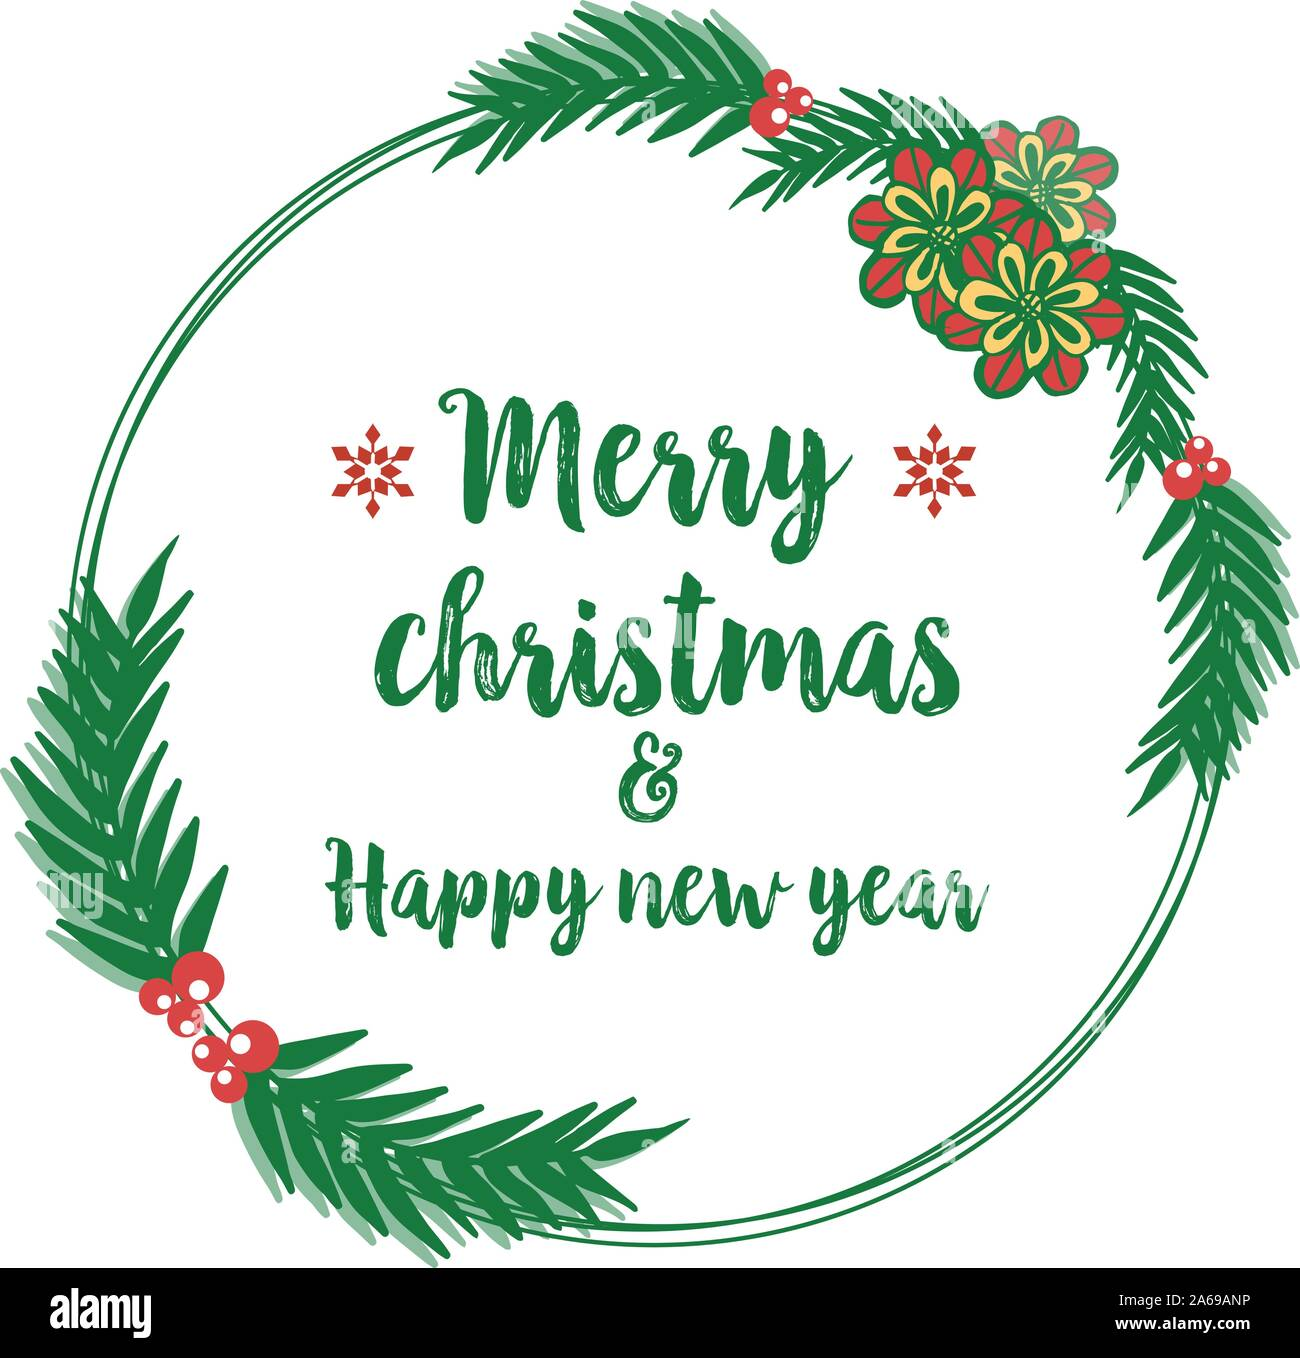 poster design merry christmas and happy new year with decor elegant colorful flower frame vector stock vector image art alamy https www alamy com poster design merry christmas and happy new year with decor elegant colorful flower frame vector image330890946 html